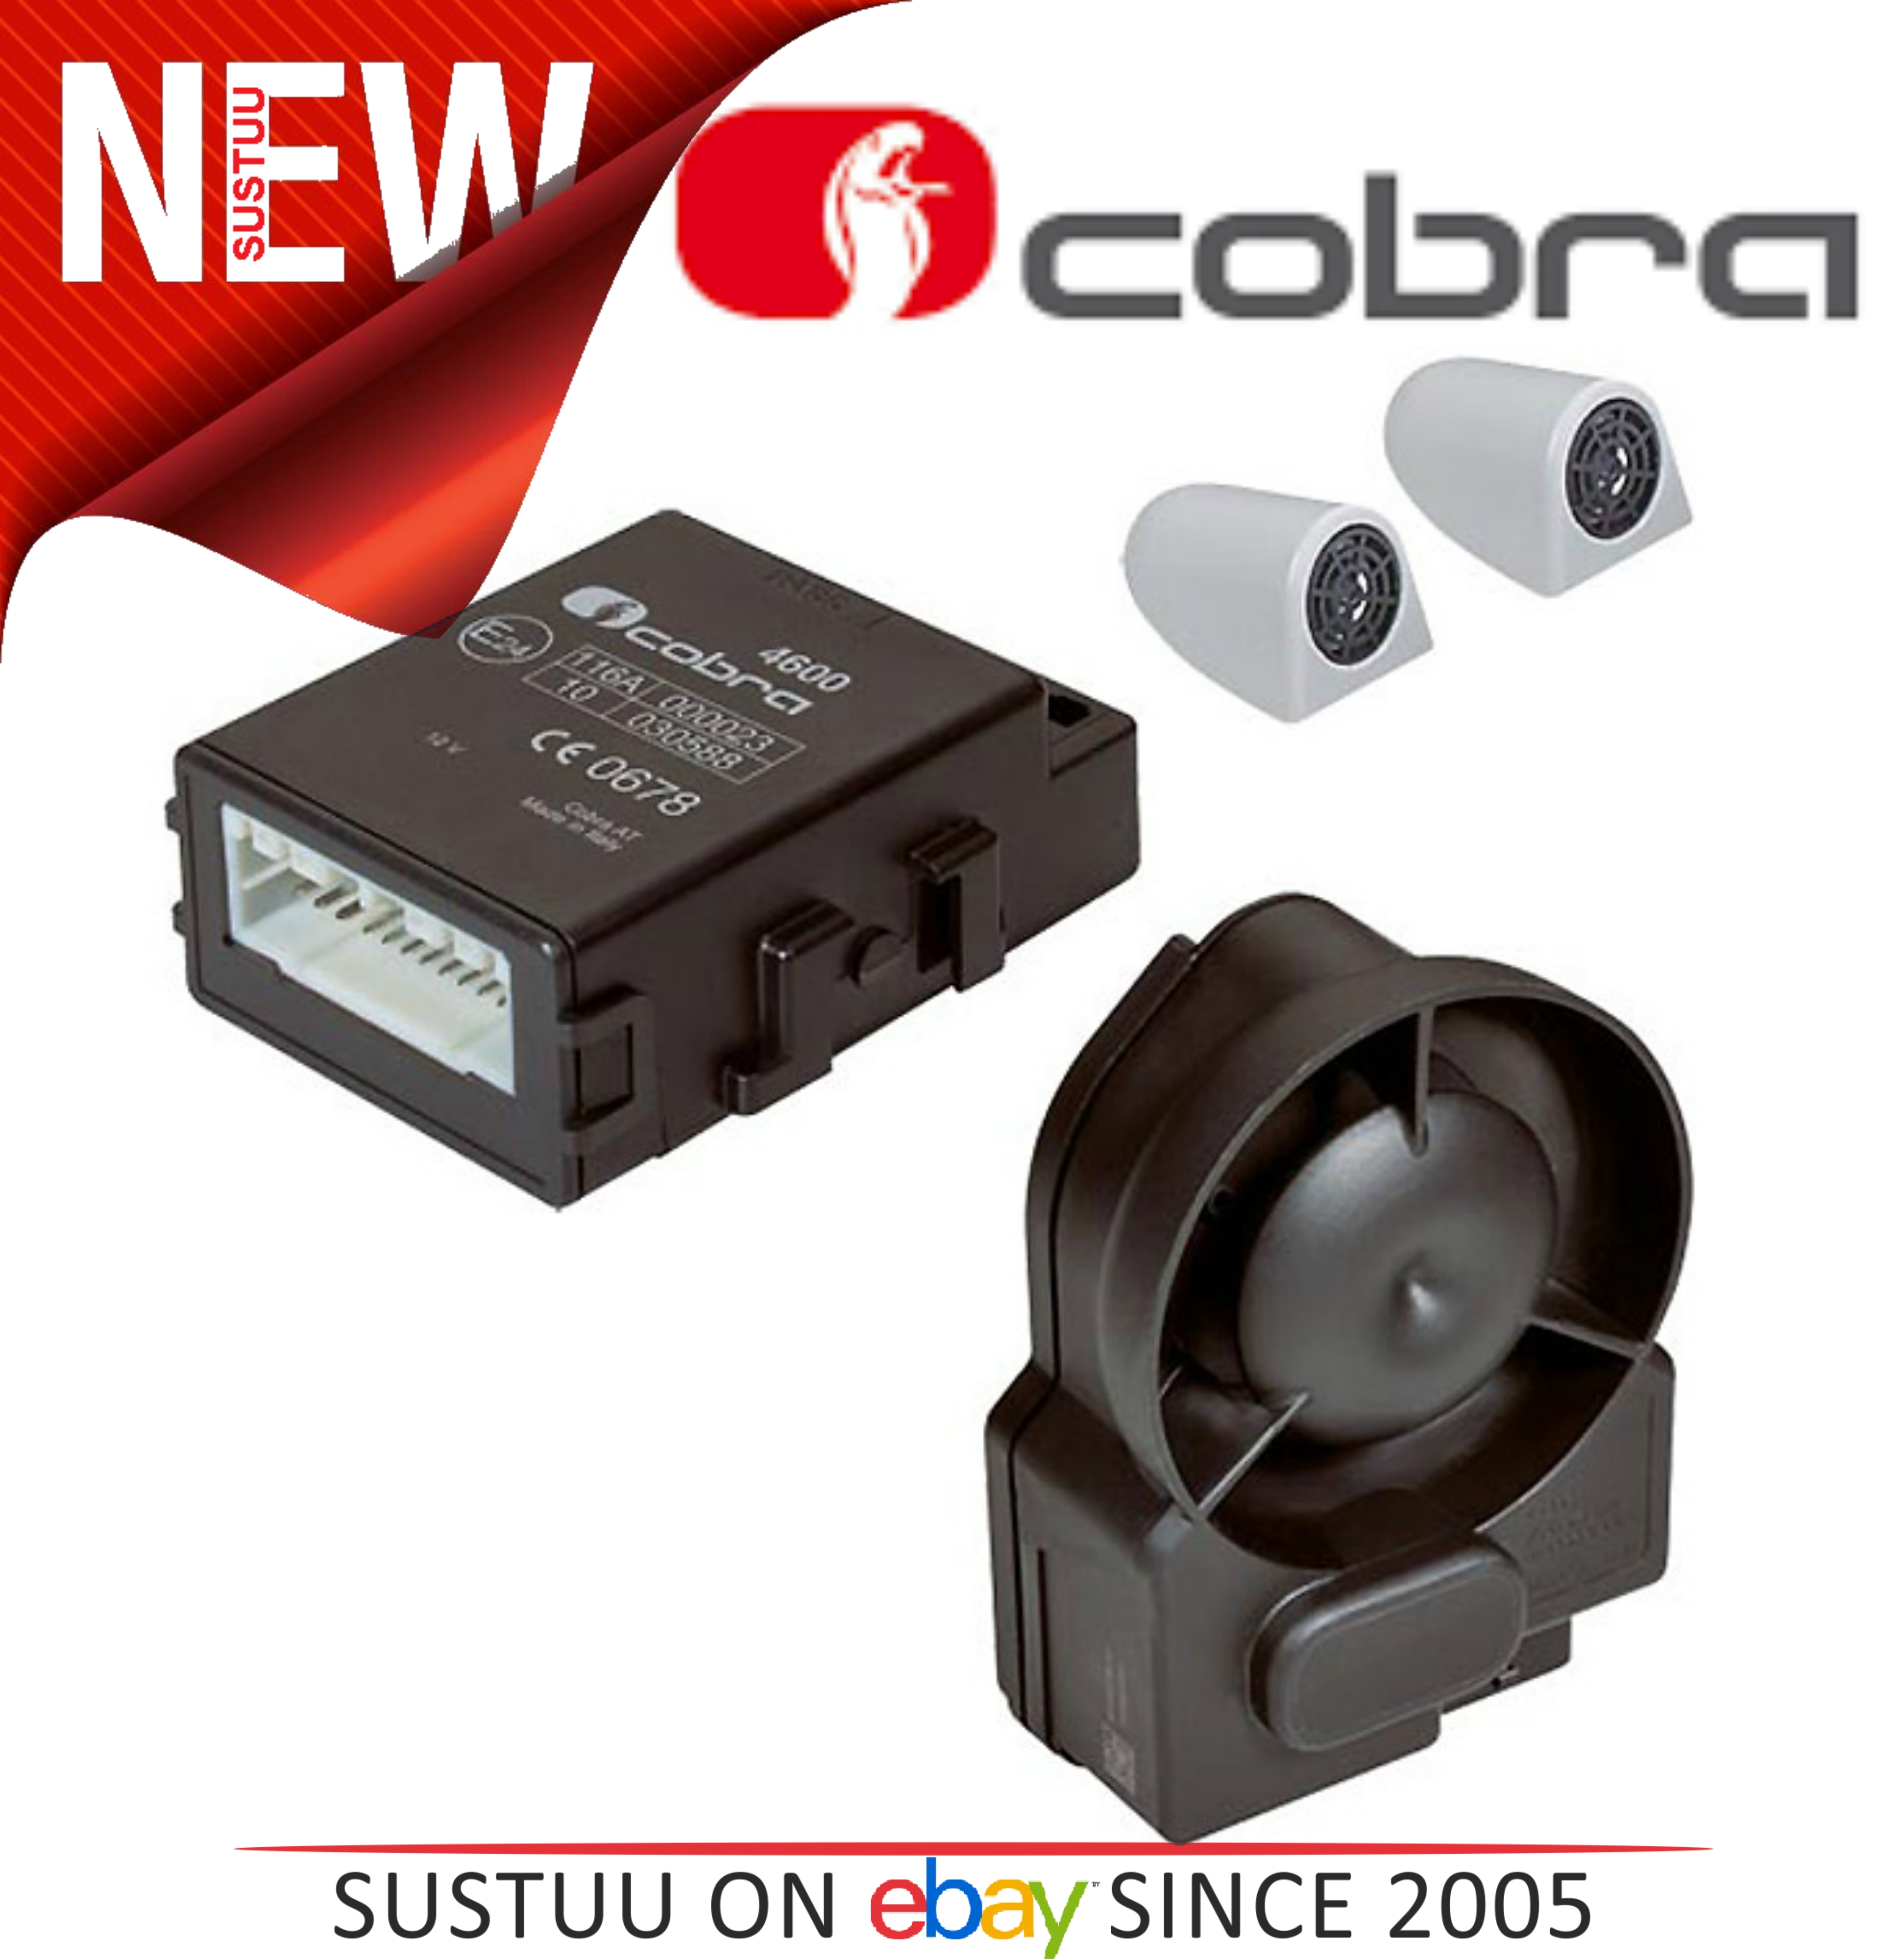 Cobra A4615 P2DC?Wireless Canbus Alarm System?Thatcham Cat 2-1?With 2 ADR Cards